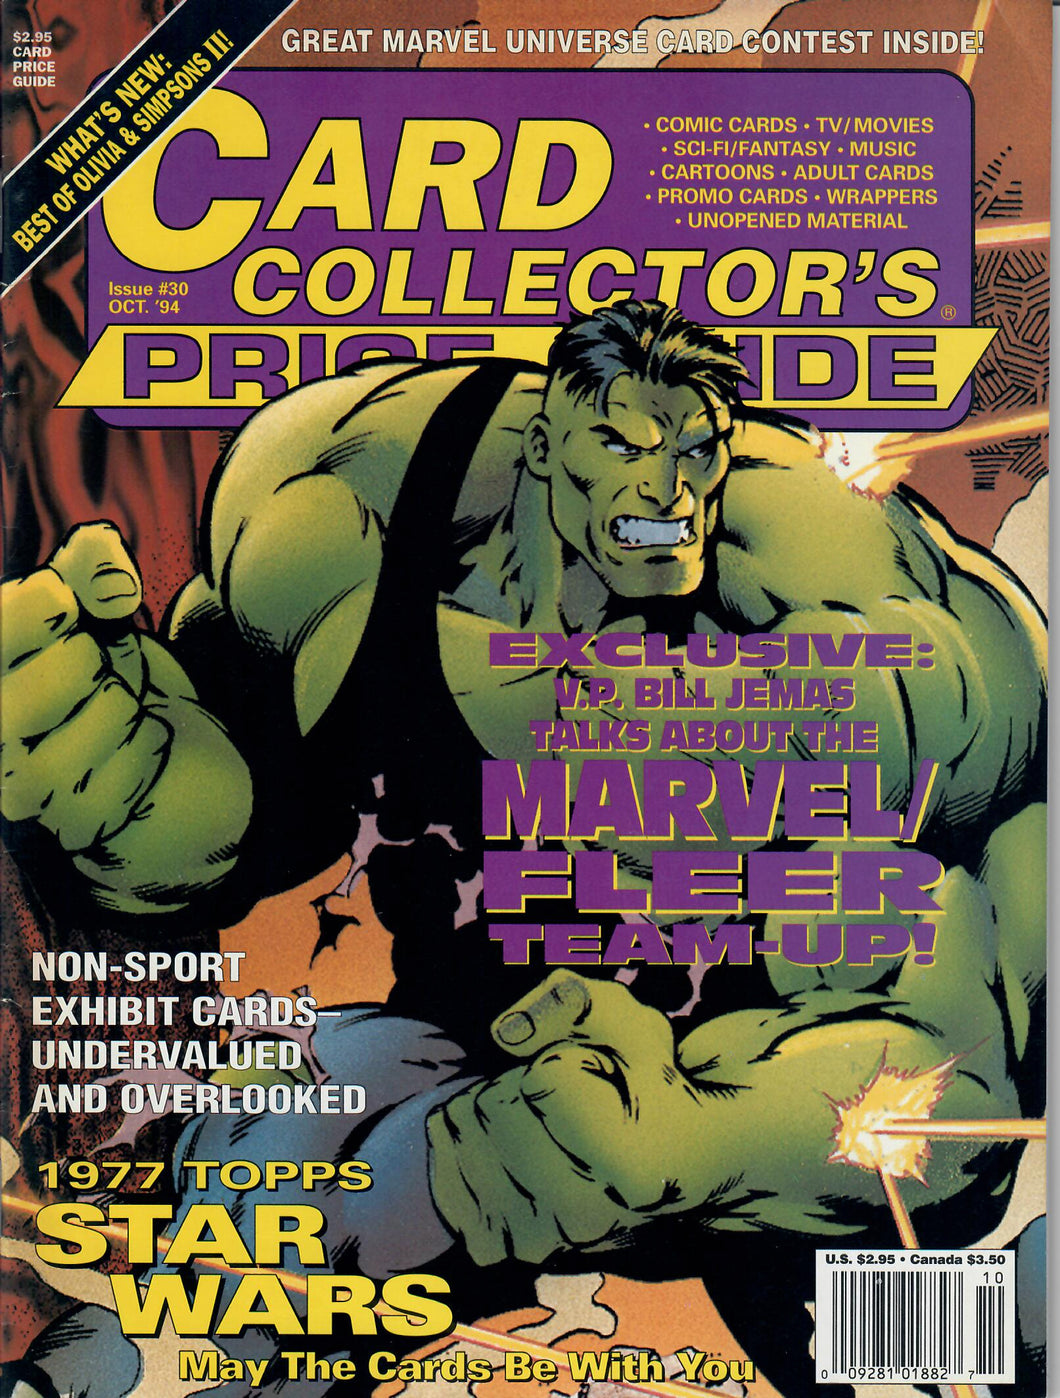 Card Collector's Price Guide - October 1994 Issue #30 - Non-Sports Trading Cards Guide